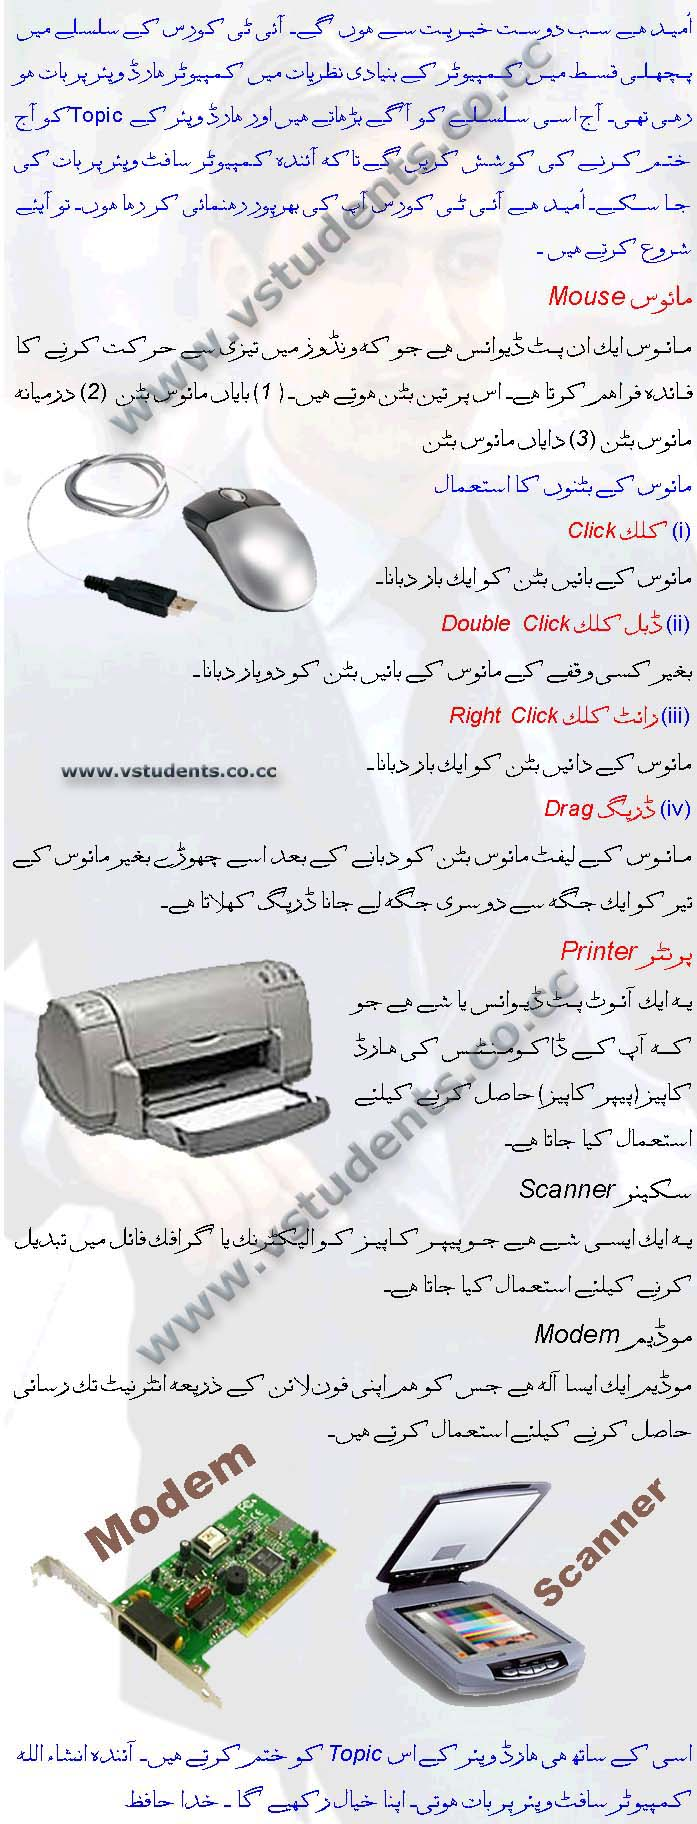 Learn Computer in Urdu for Android - APK Download